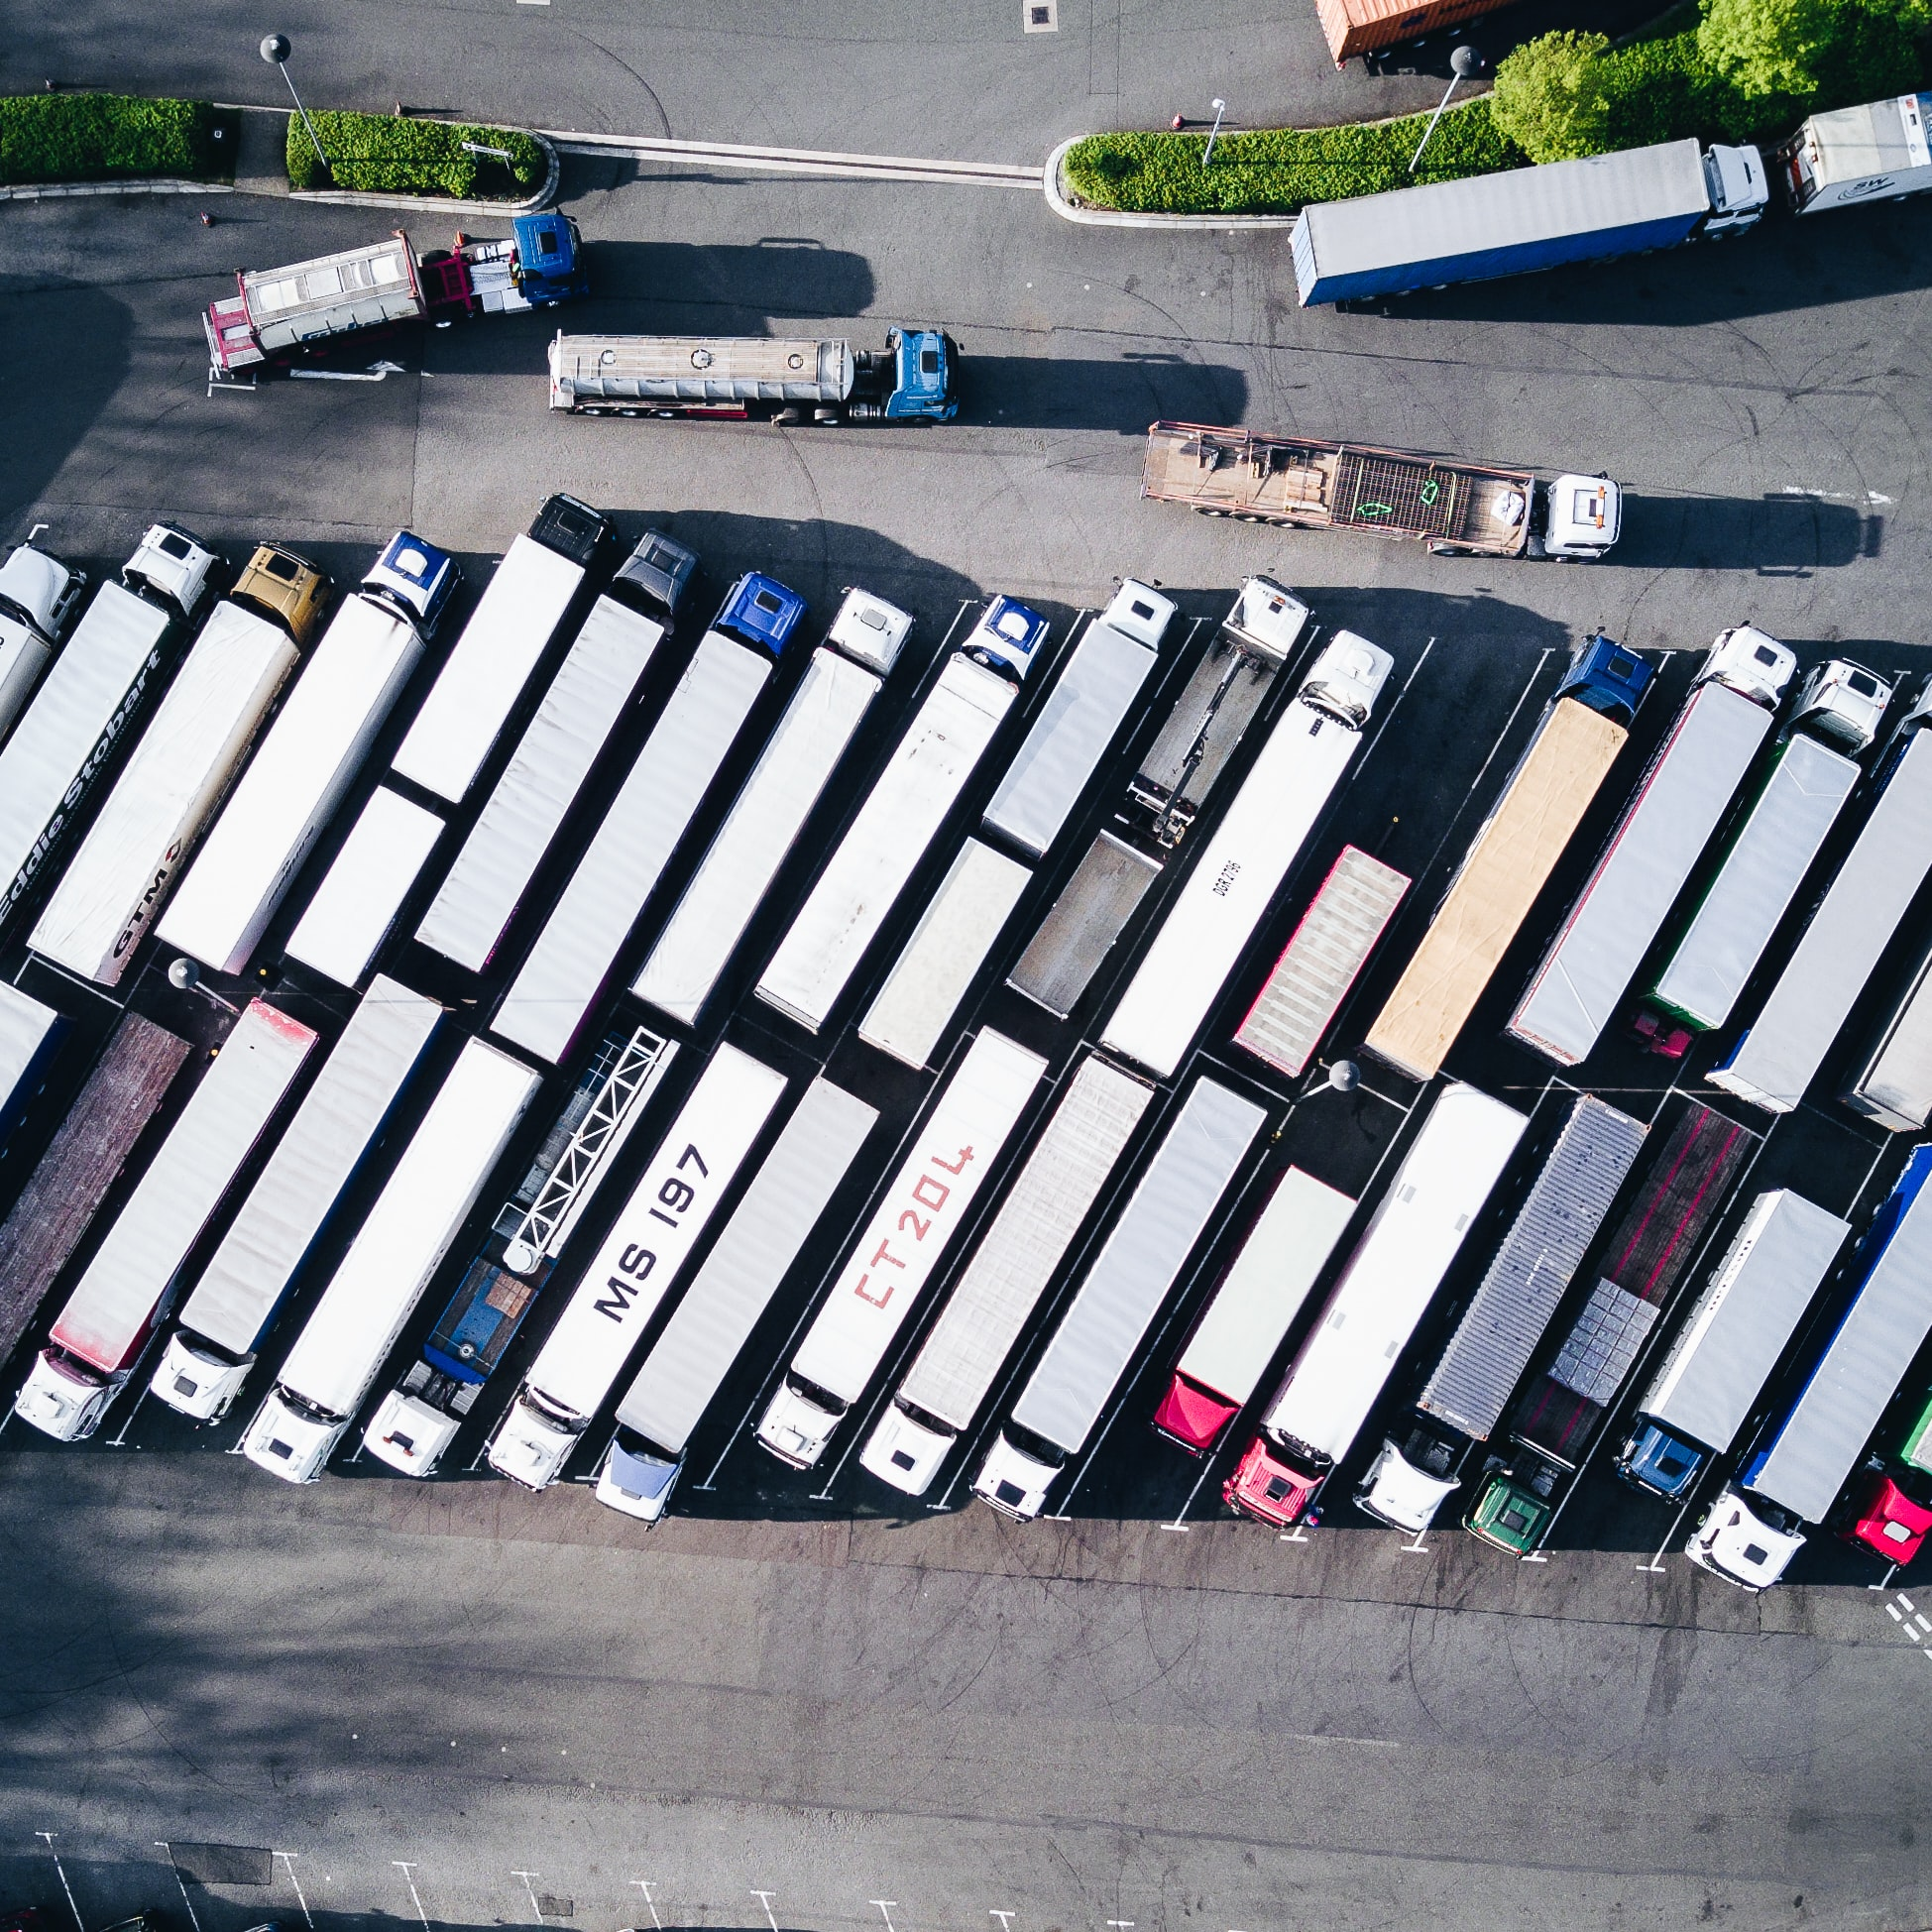 A drone shot of two rows of parked trucks with long trailers